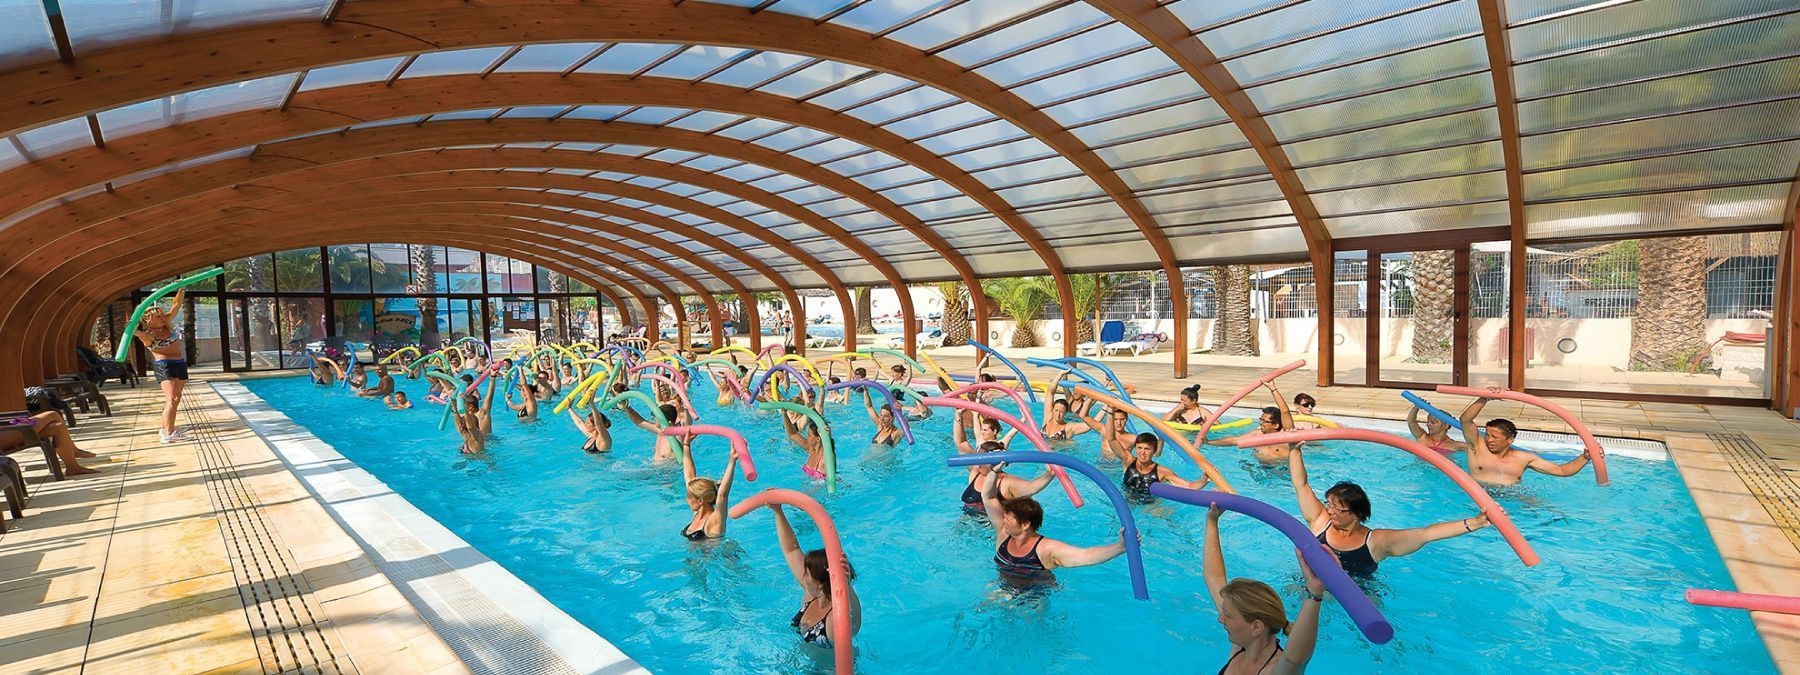 Camping piscine couverte camping la pinede